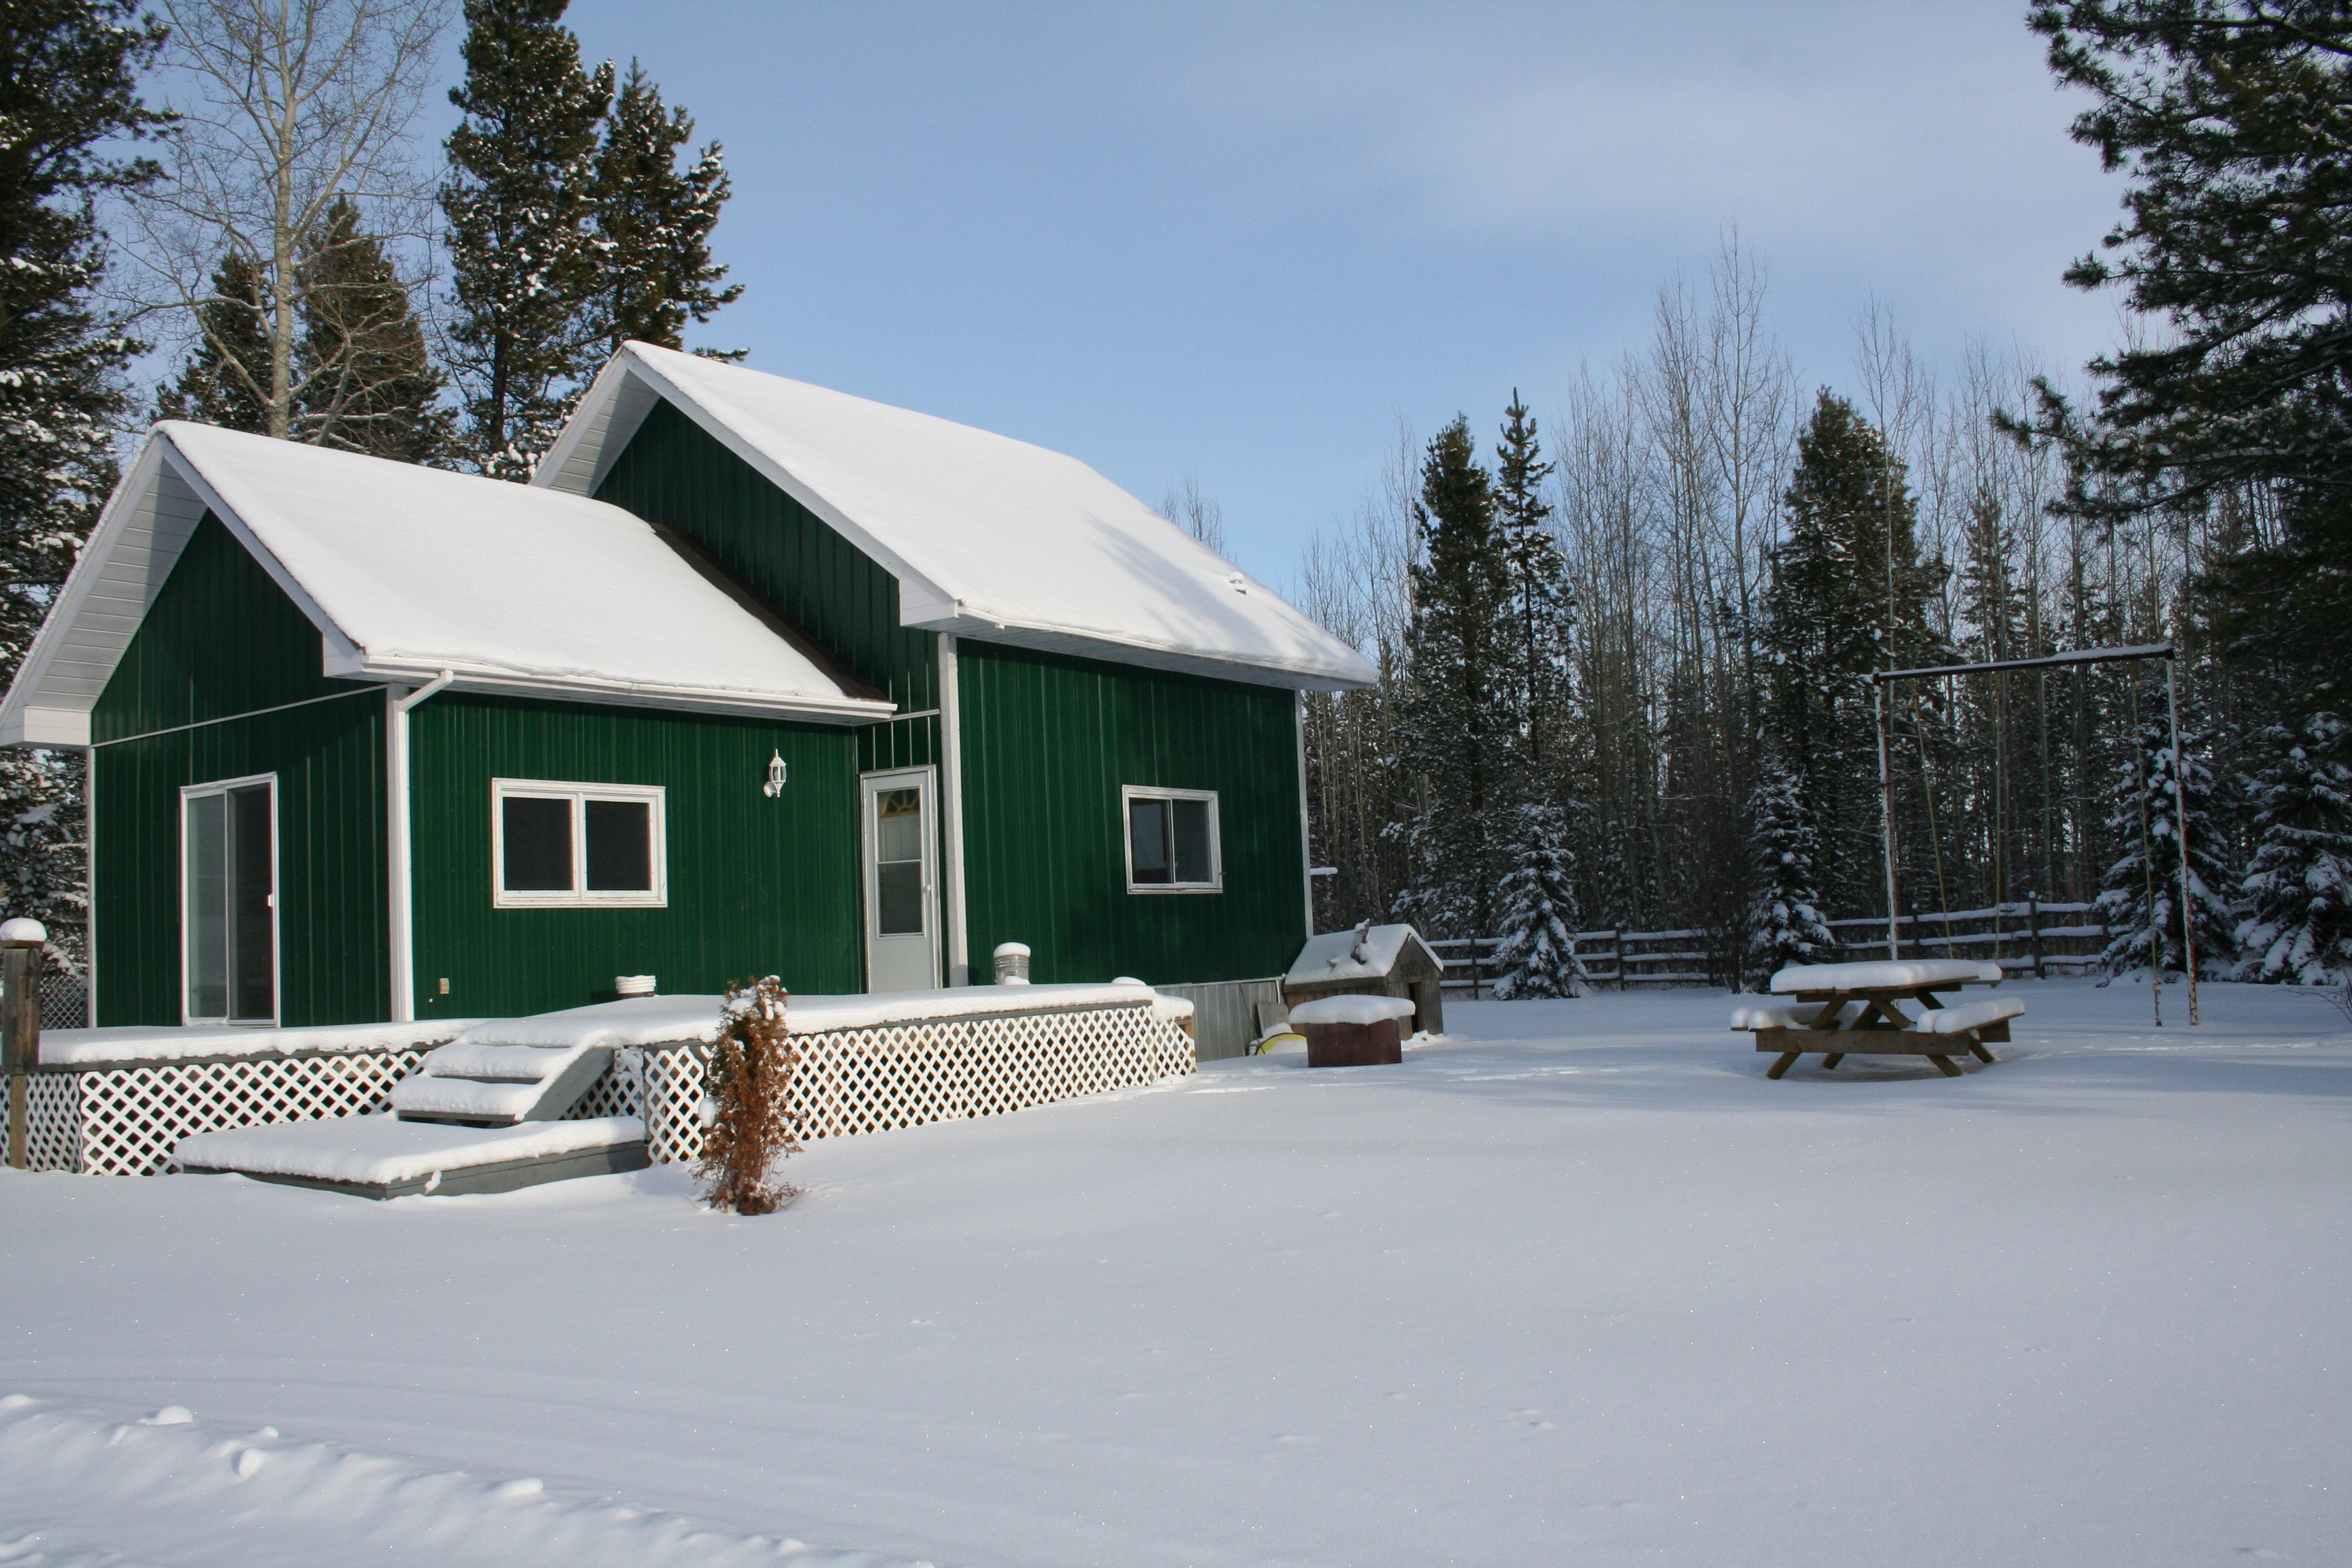 Last West Outfitting hunting lodge during winter time under the snow